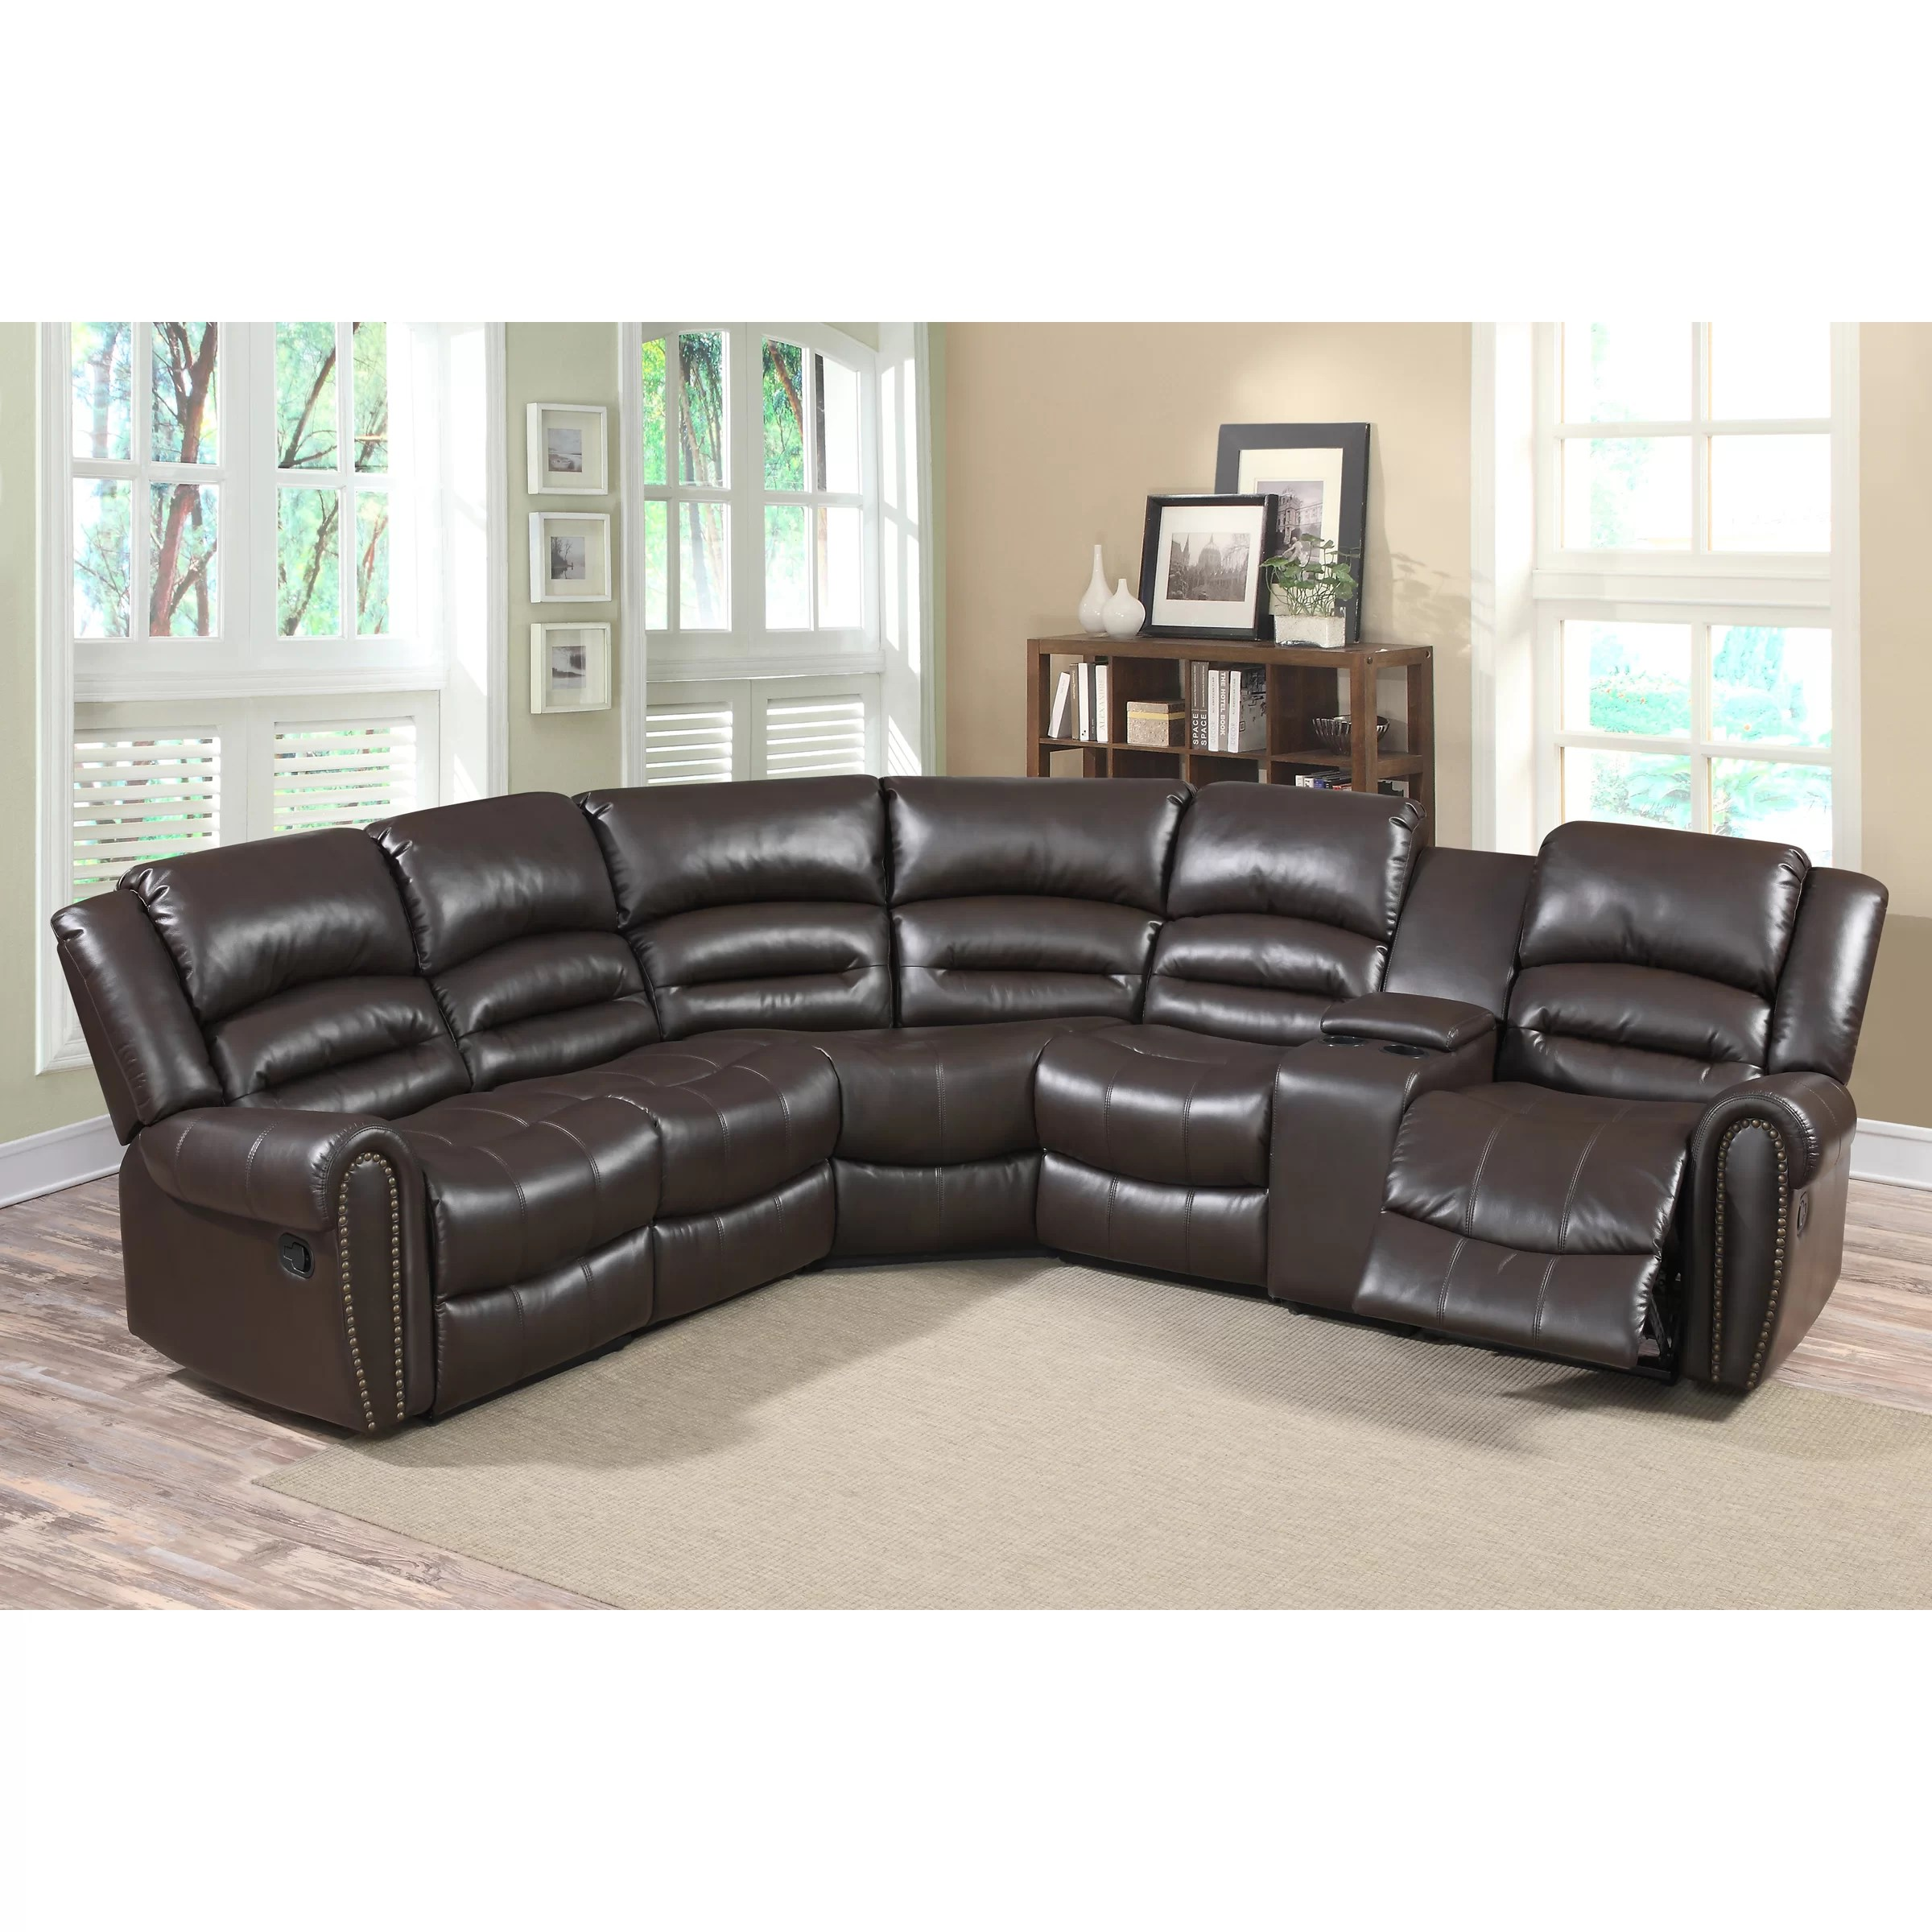 tosh furniture dark brown sofa set scs leather sofas and chairs living in style bingham sectional reviews wayfair